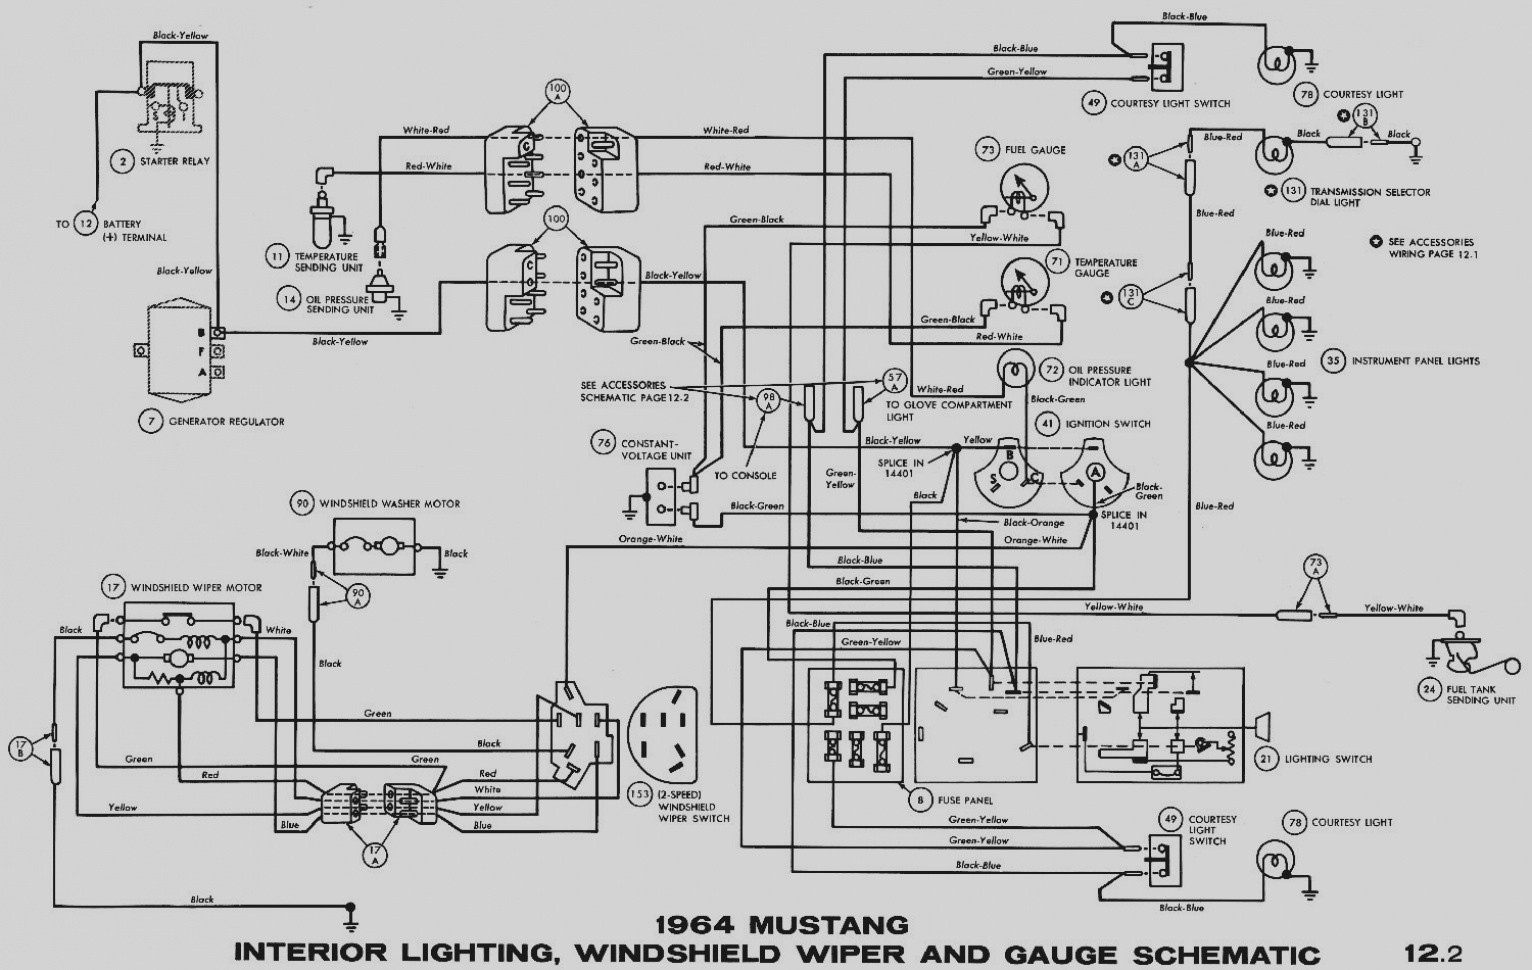 hight resolution of wiring diagram 1965 ford mustang interior light wiper gauges wiring wiring diagram auto